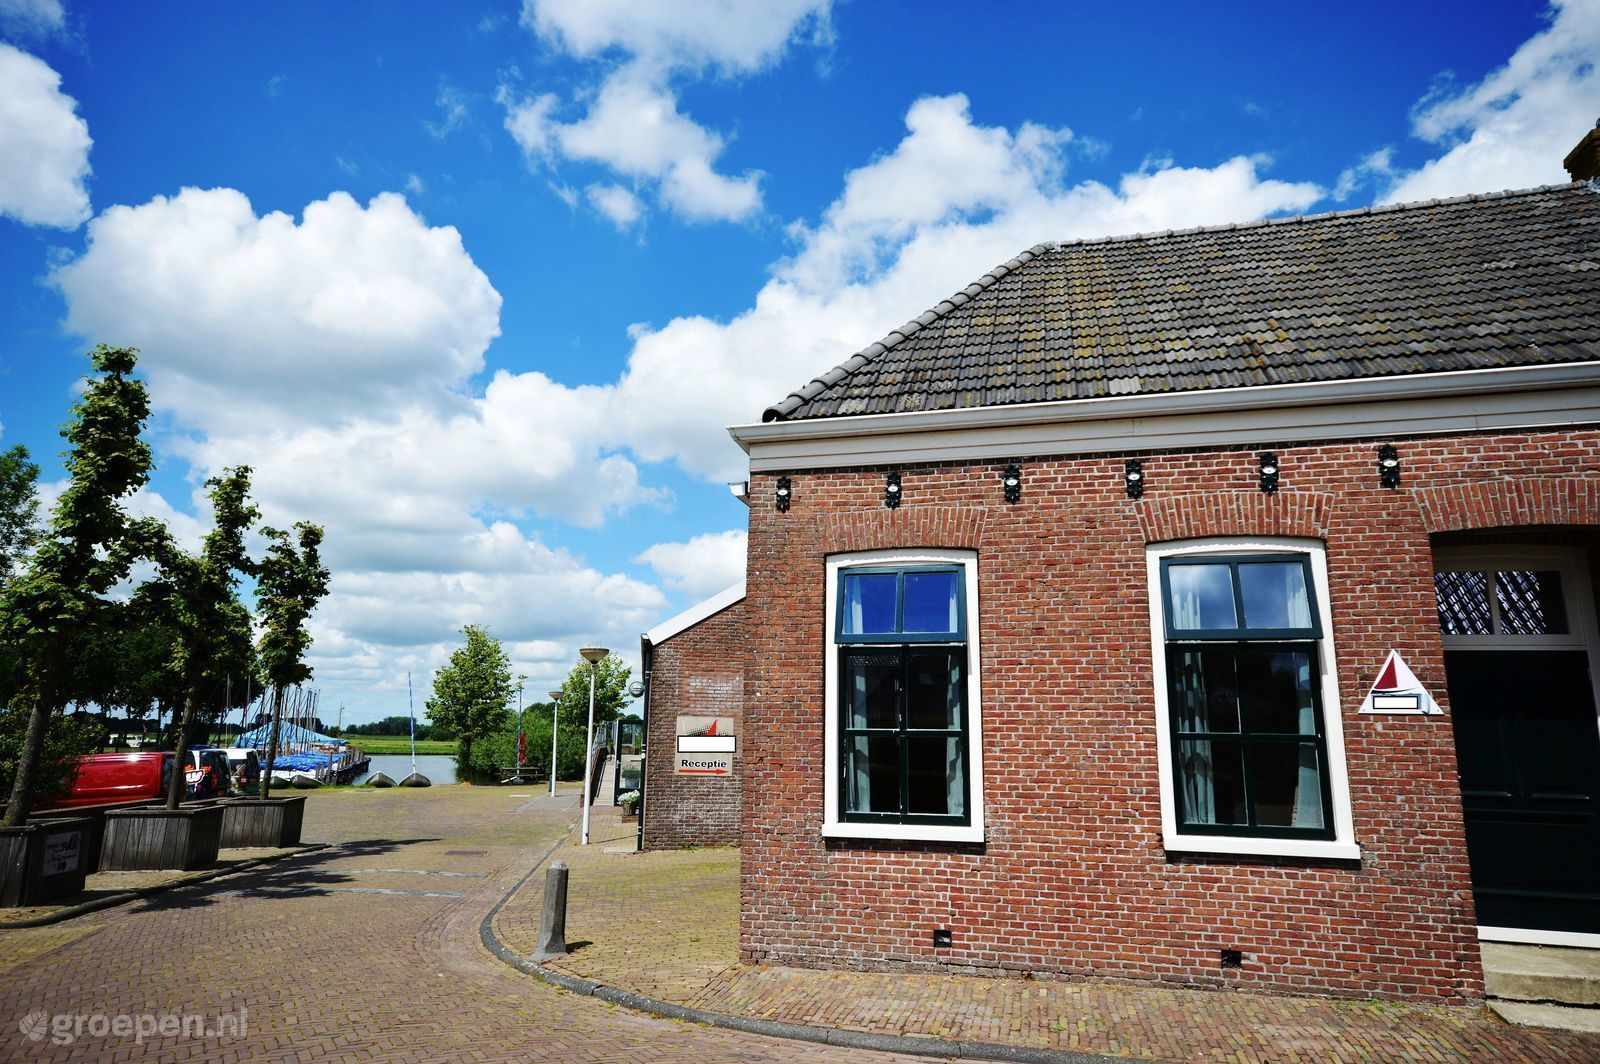 Group accommodation Idskenhuizen